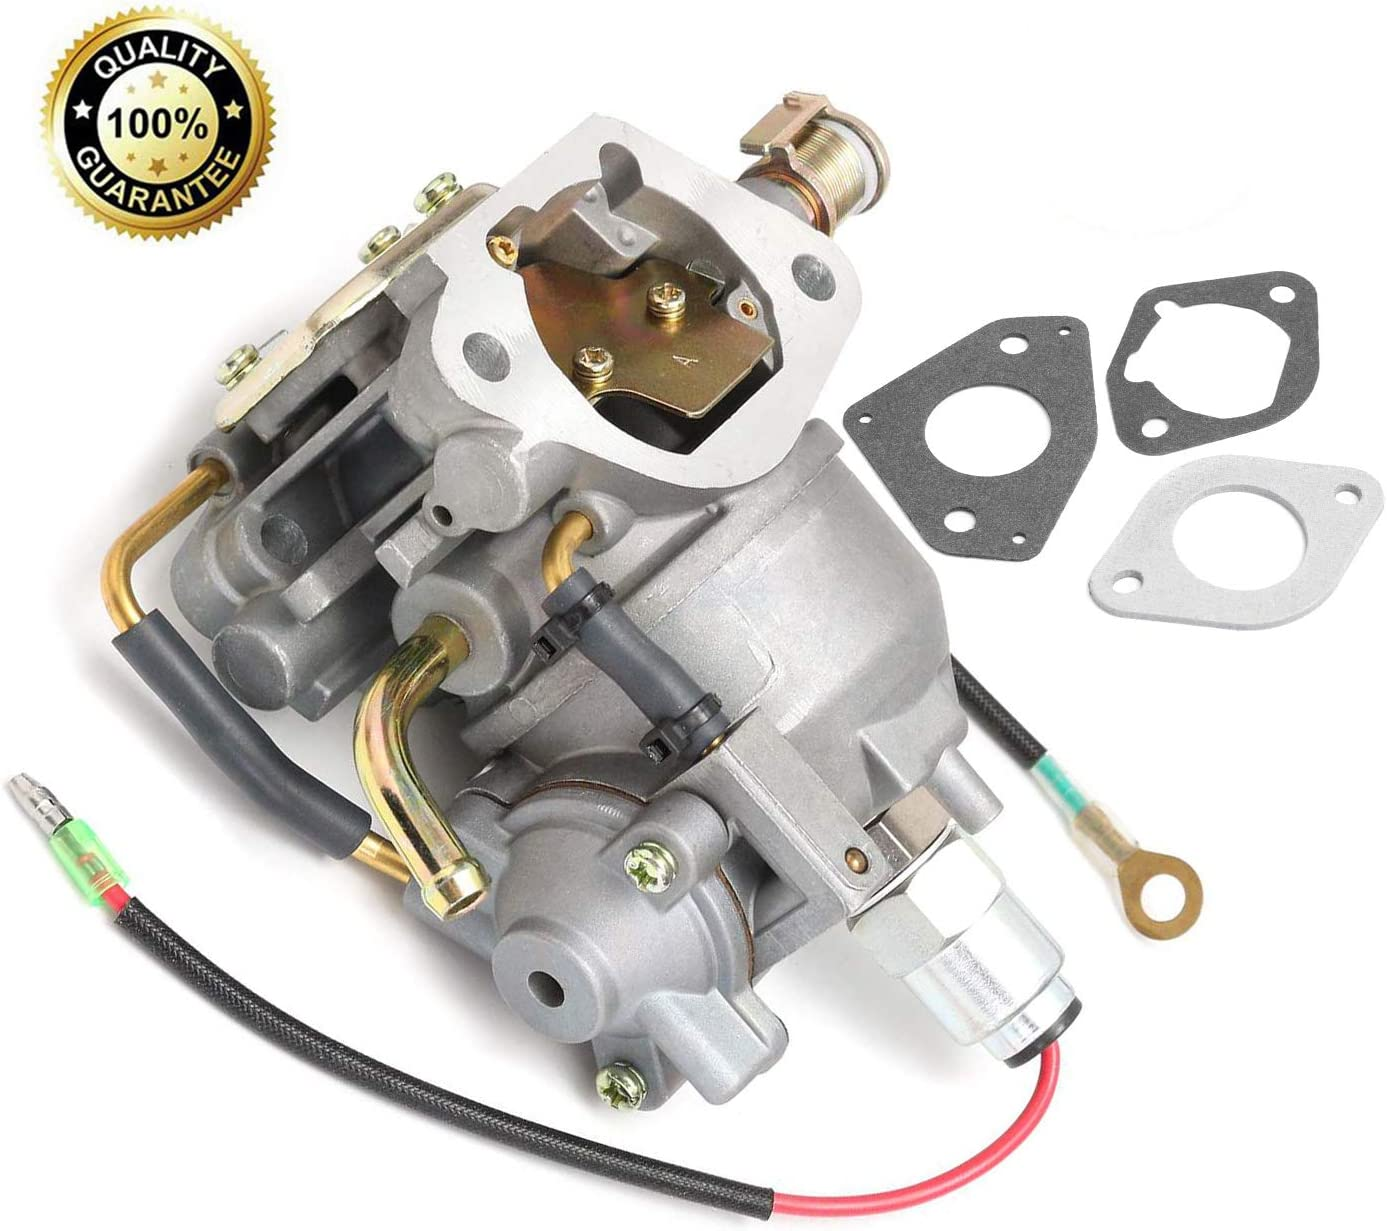 CV730S Carburetor For Kohler CV730S CV740S 25HP 27 HP Engine Carb Replaces Kohler Engines 24853102-S 24-853-102-S for CV730 with specs: 0039, 0040, 0041, 0042, 0043, 0044